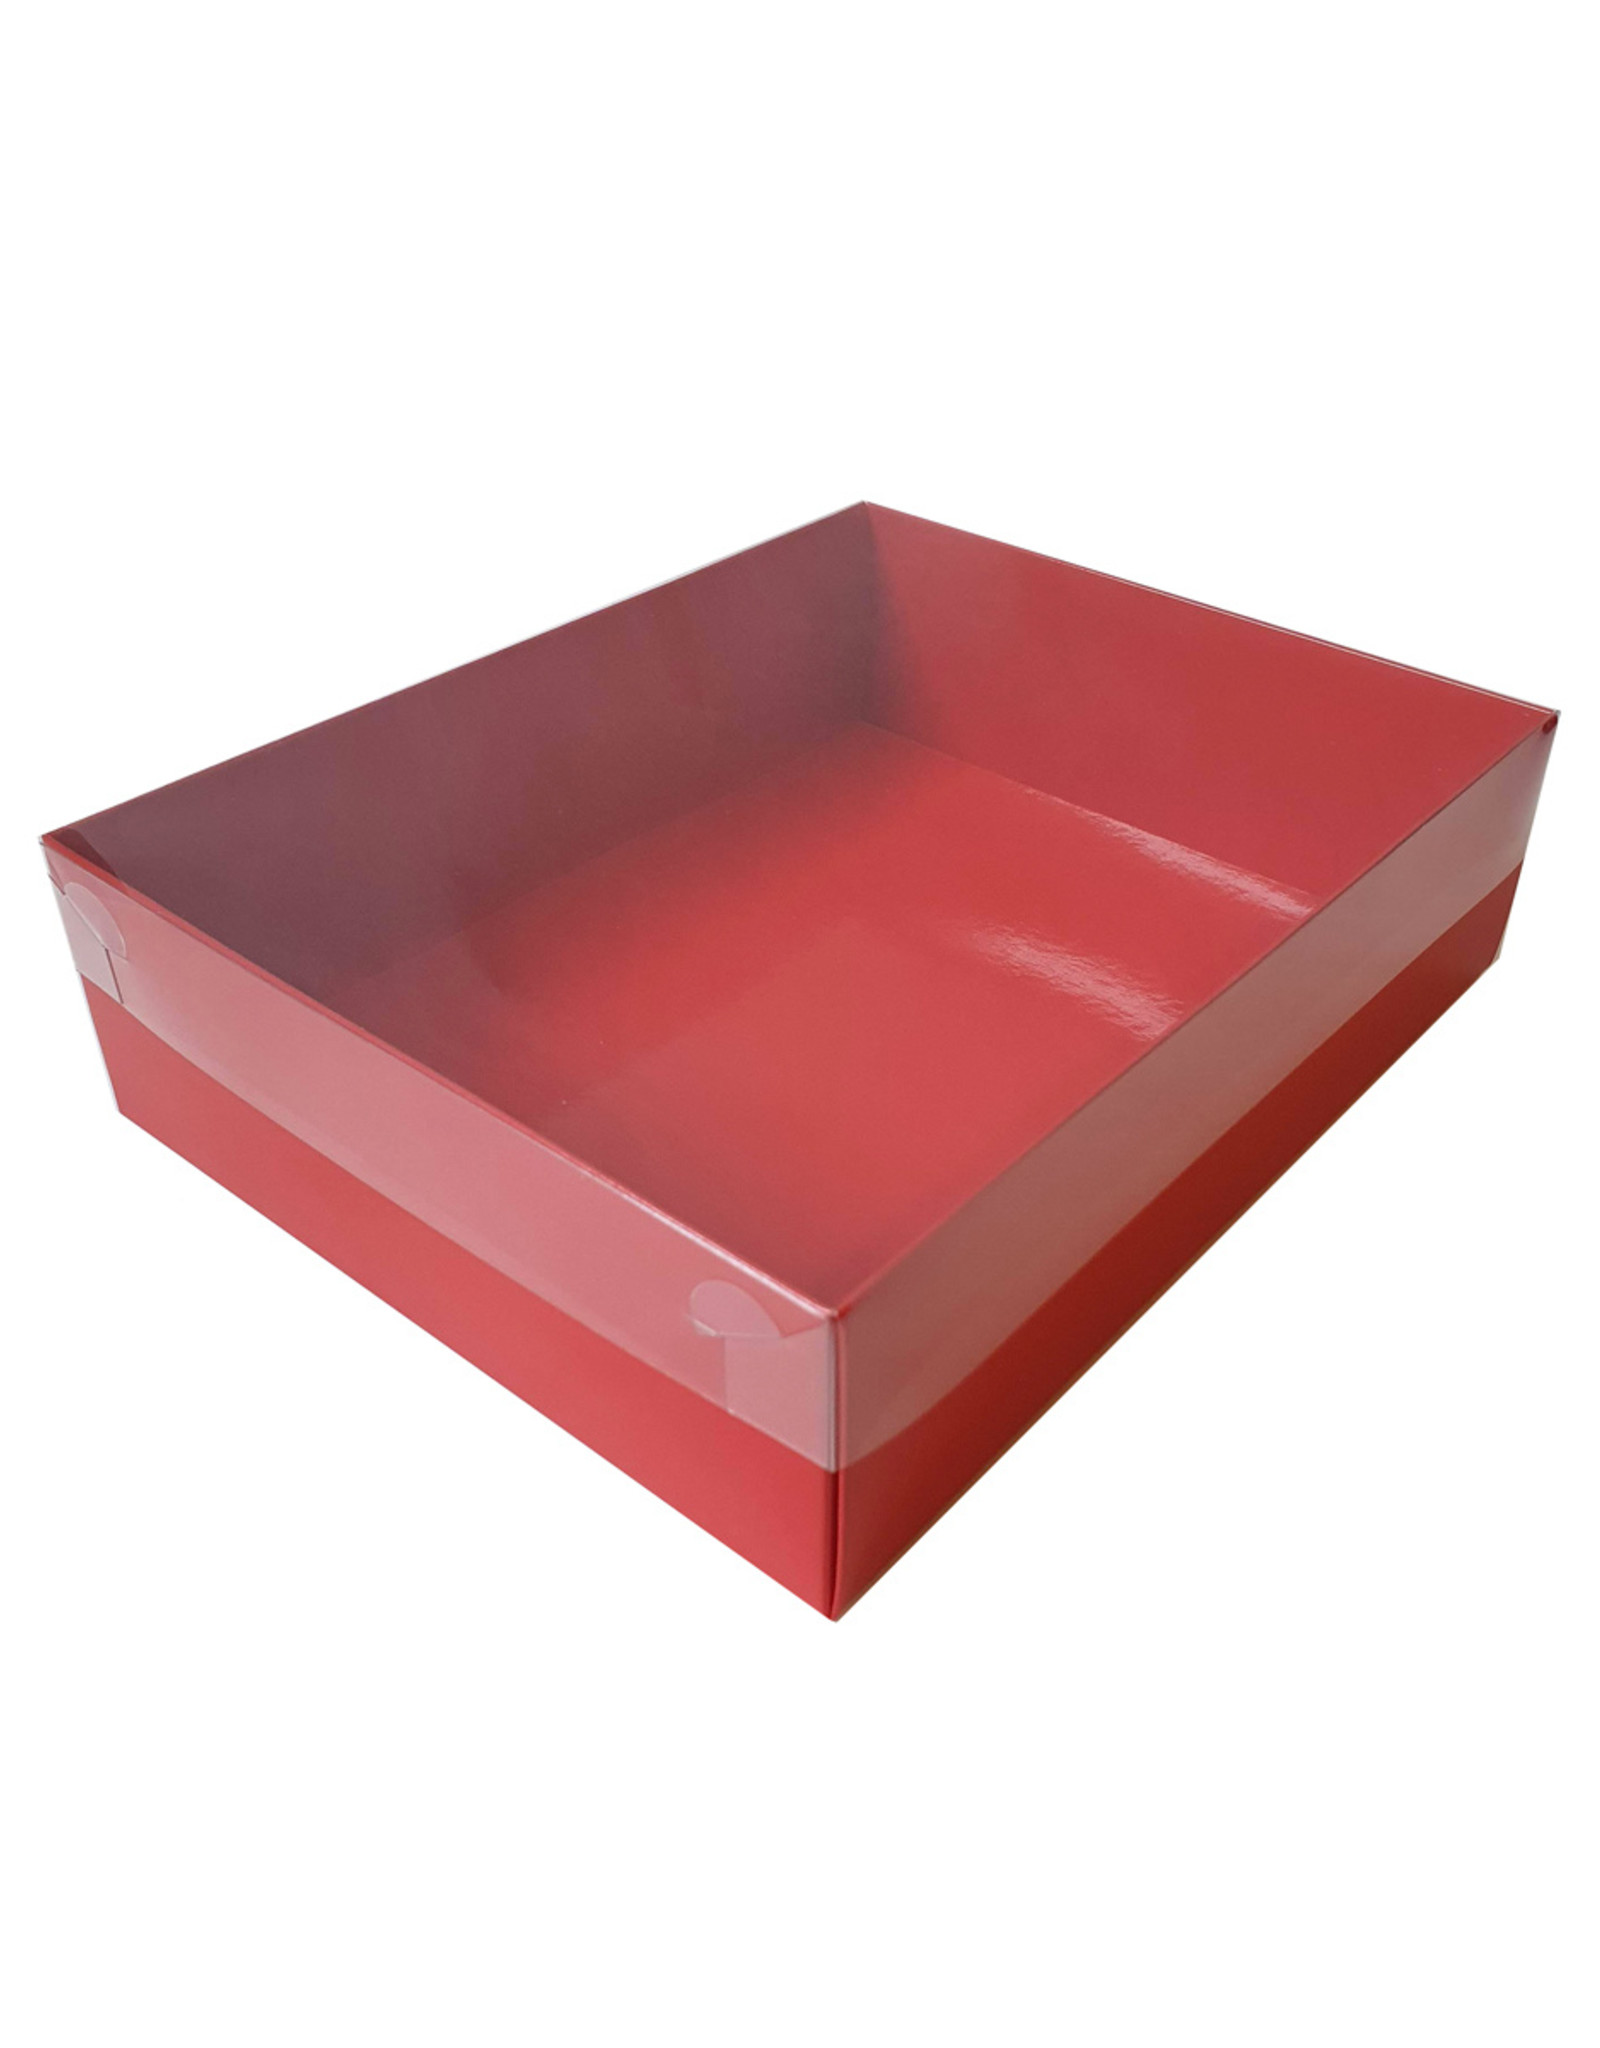 Red sweets box with clear lid - 25 x 20 x 7 cm (per 50 pieces)